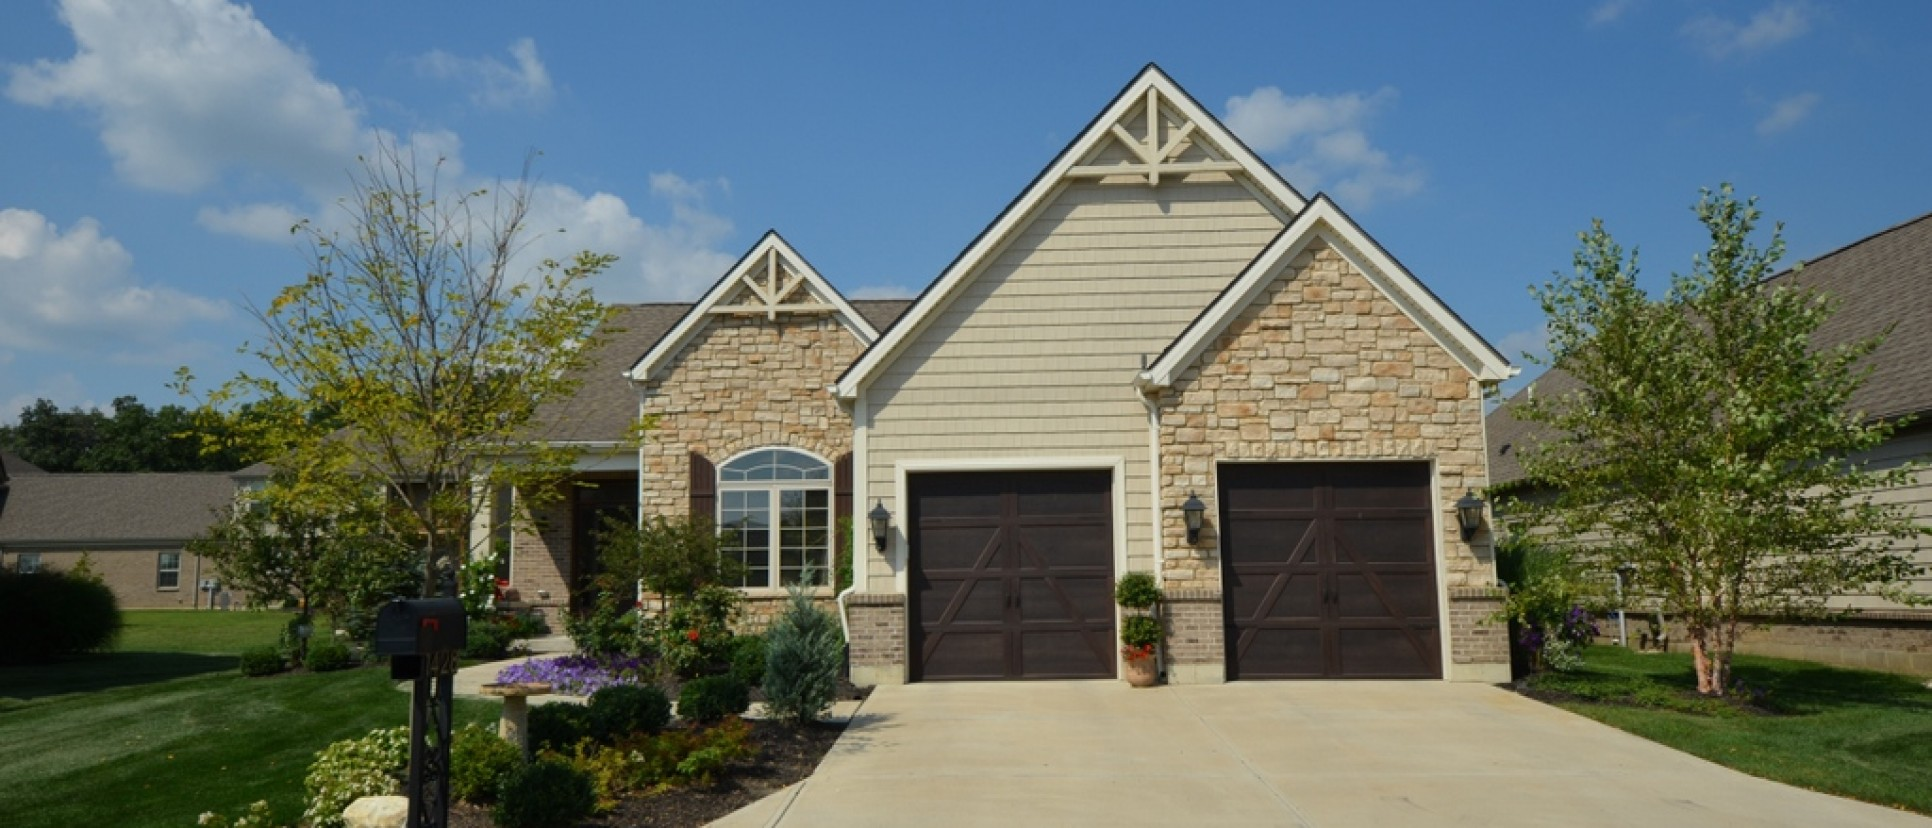 Custom exterior by Design Homes. Located in Soraya Farms.